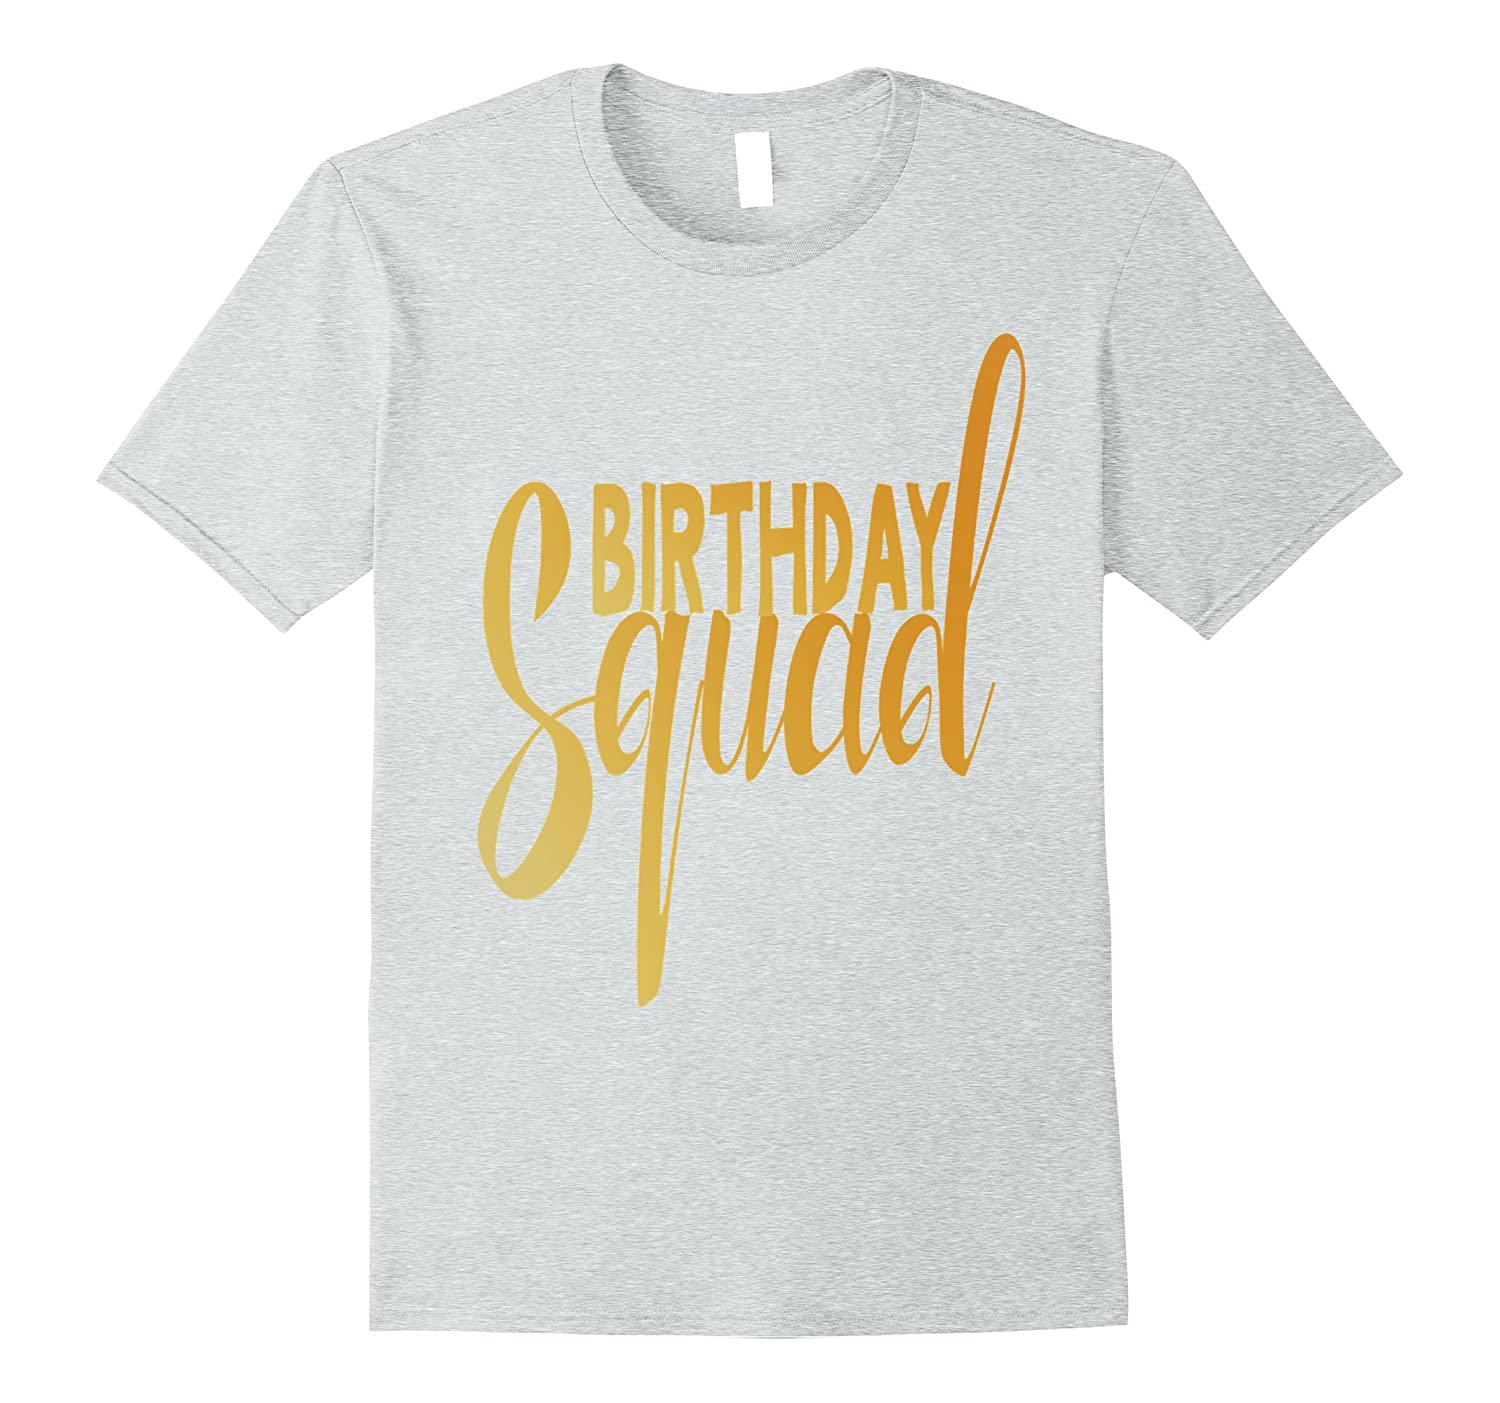 Birthday Squad Shirt Family T Gift ANZ